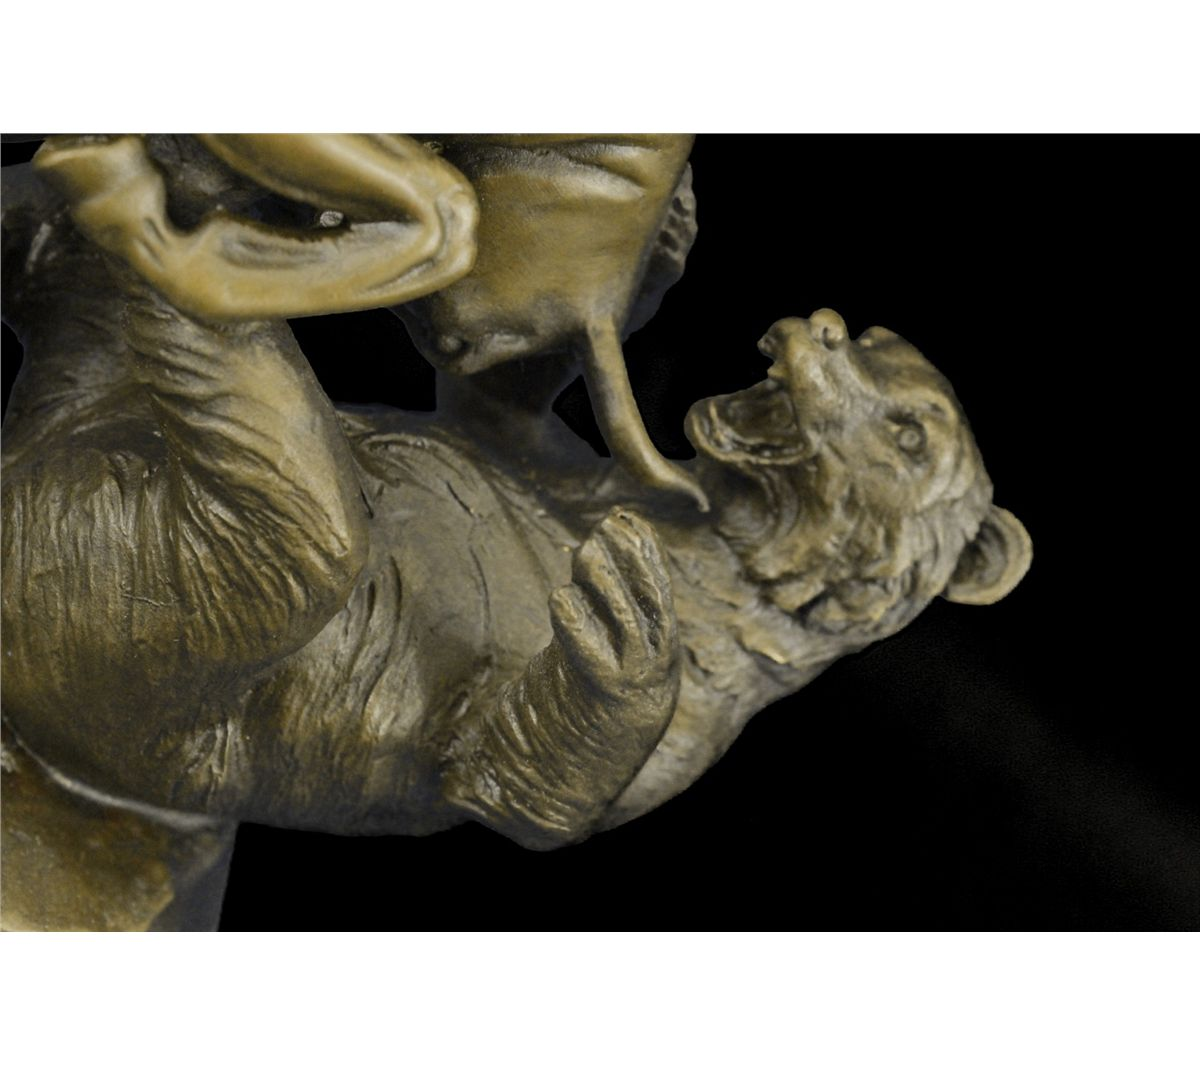 Bull And Bear Gifts 9 Quotx11 Quot Hot Cast Stock Market Bull Vs Bear Bronze Sculpture